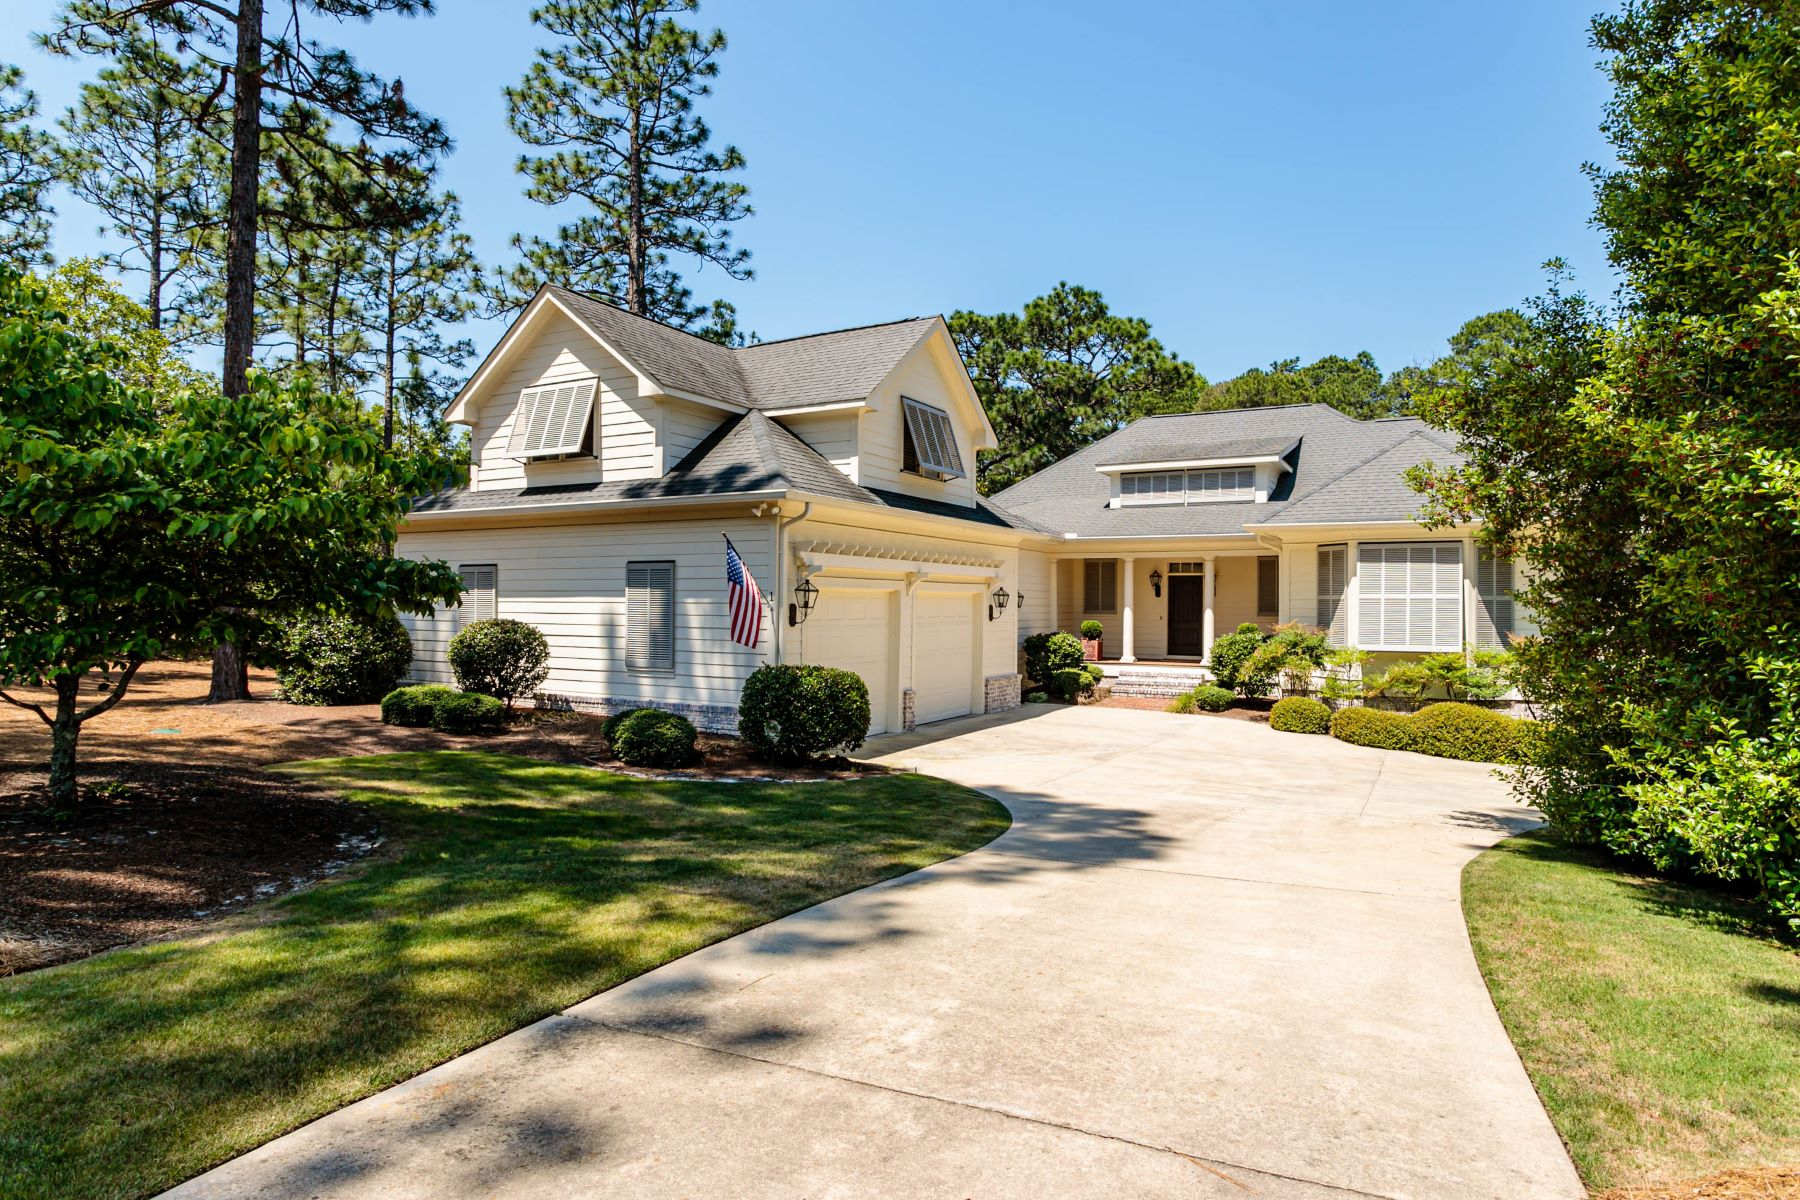 Single Family Homes for Active at 1 Granville Dr. Pinehurst, North Carolina 28374 United States